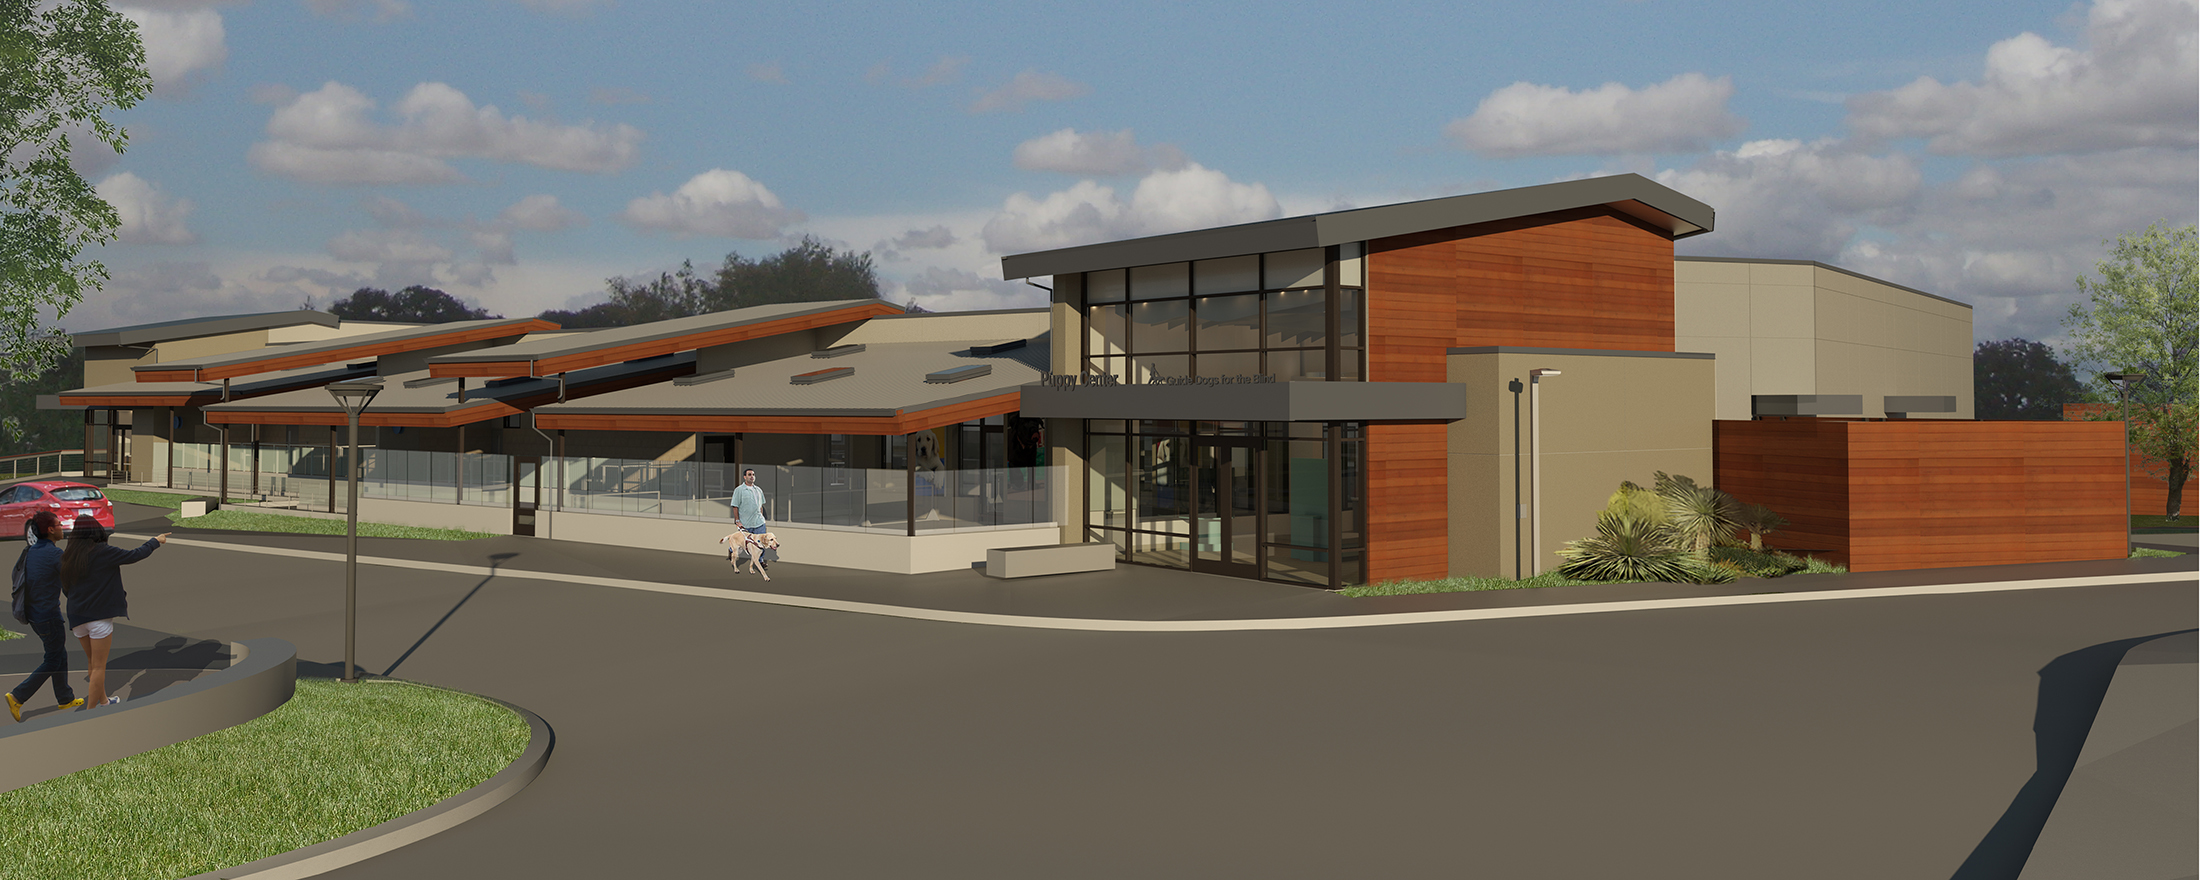 Professional rendering of the new large Puppy Center that will be on the San Rafael, CA campus